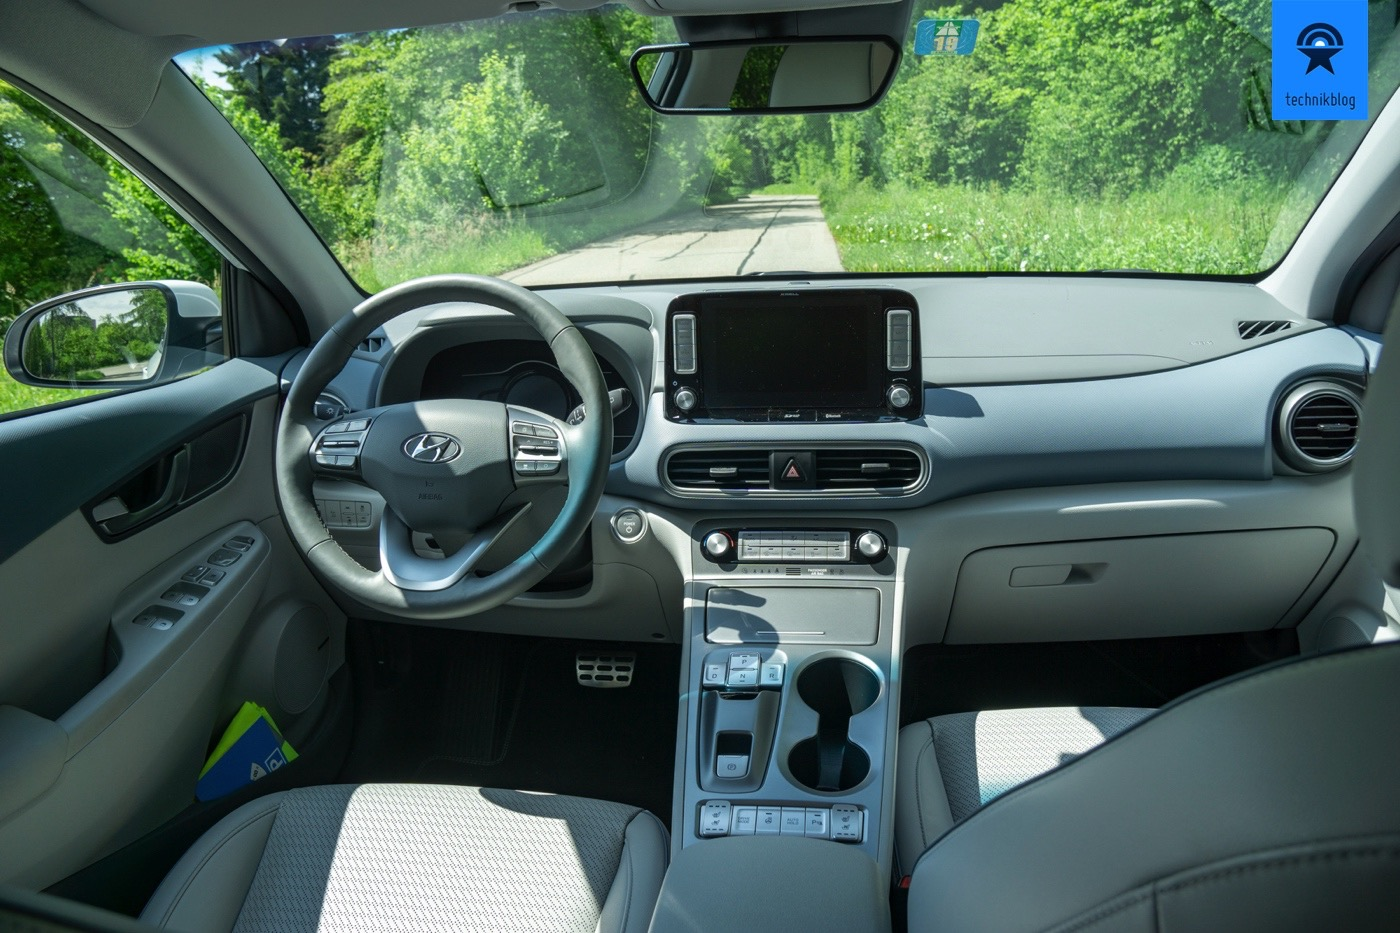 Cockpit des Hyundai Kona electric